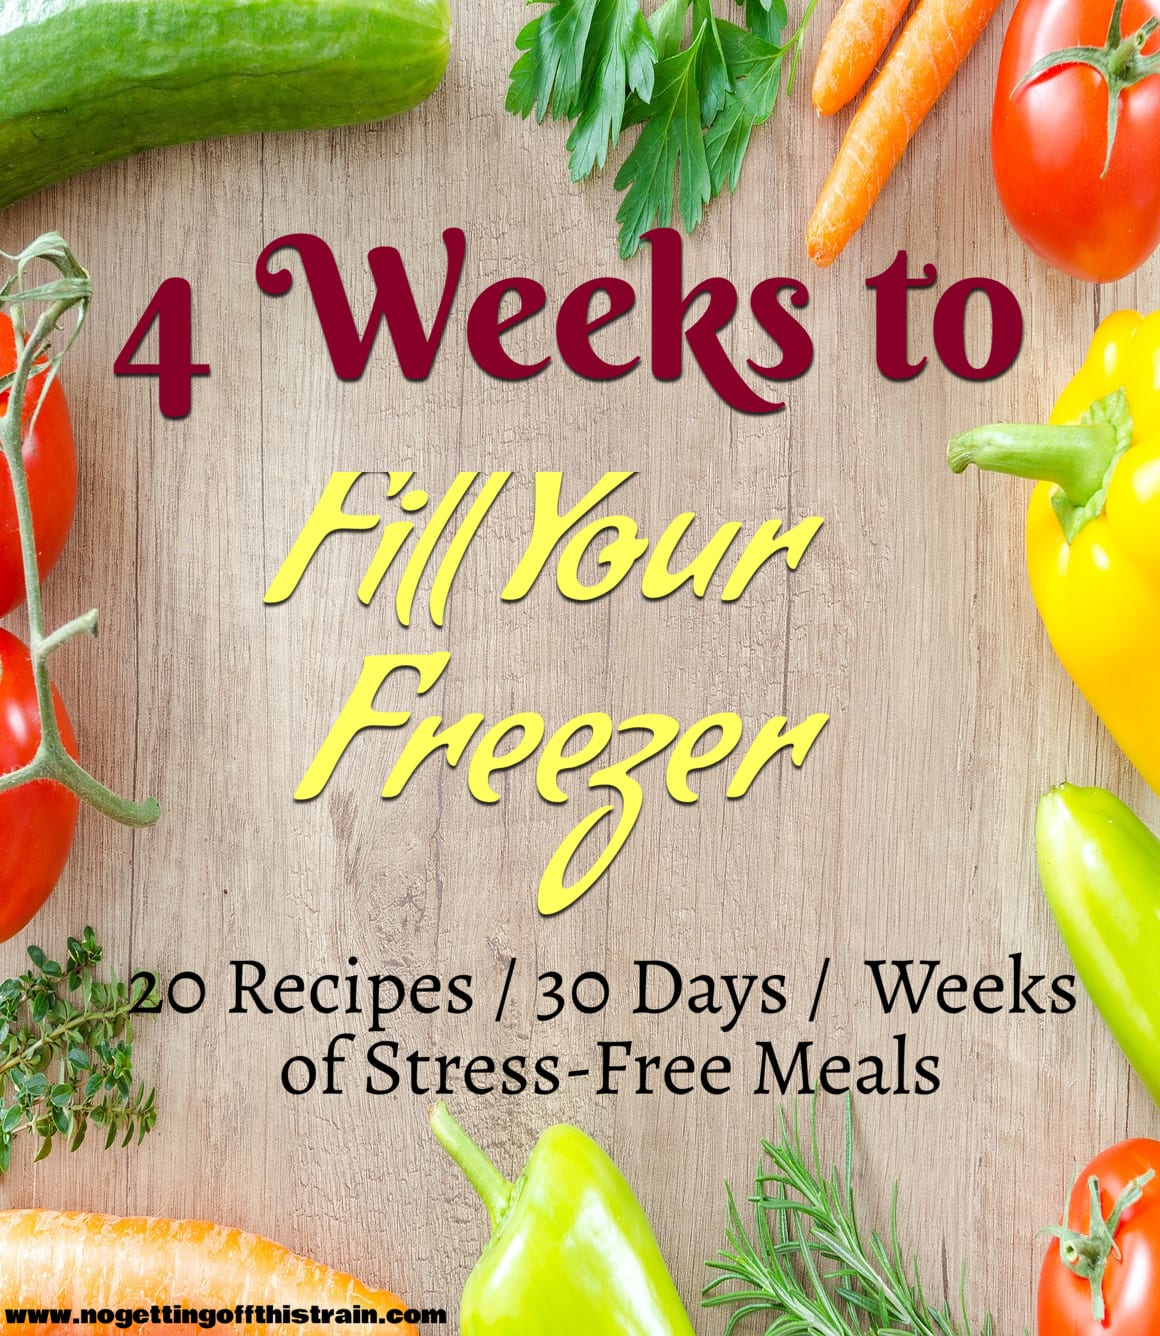 4 Weeks to Fill Your Freezer e-book